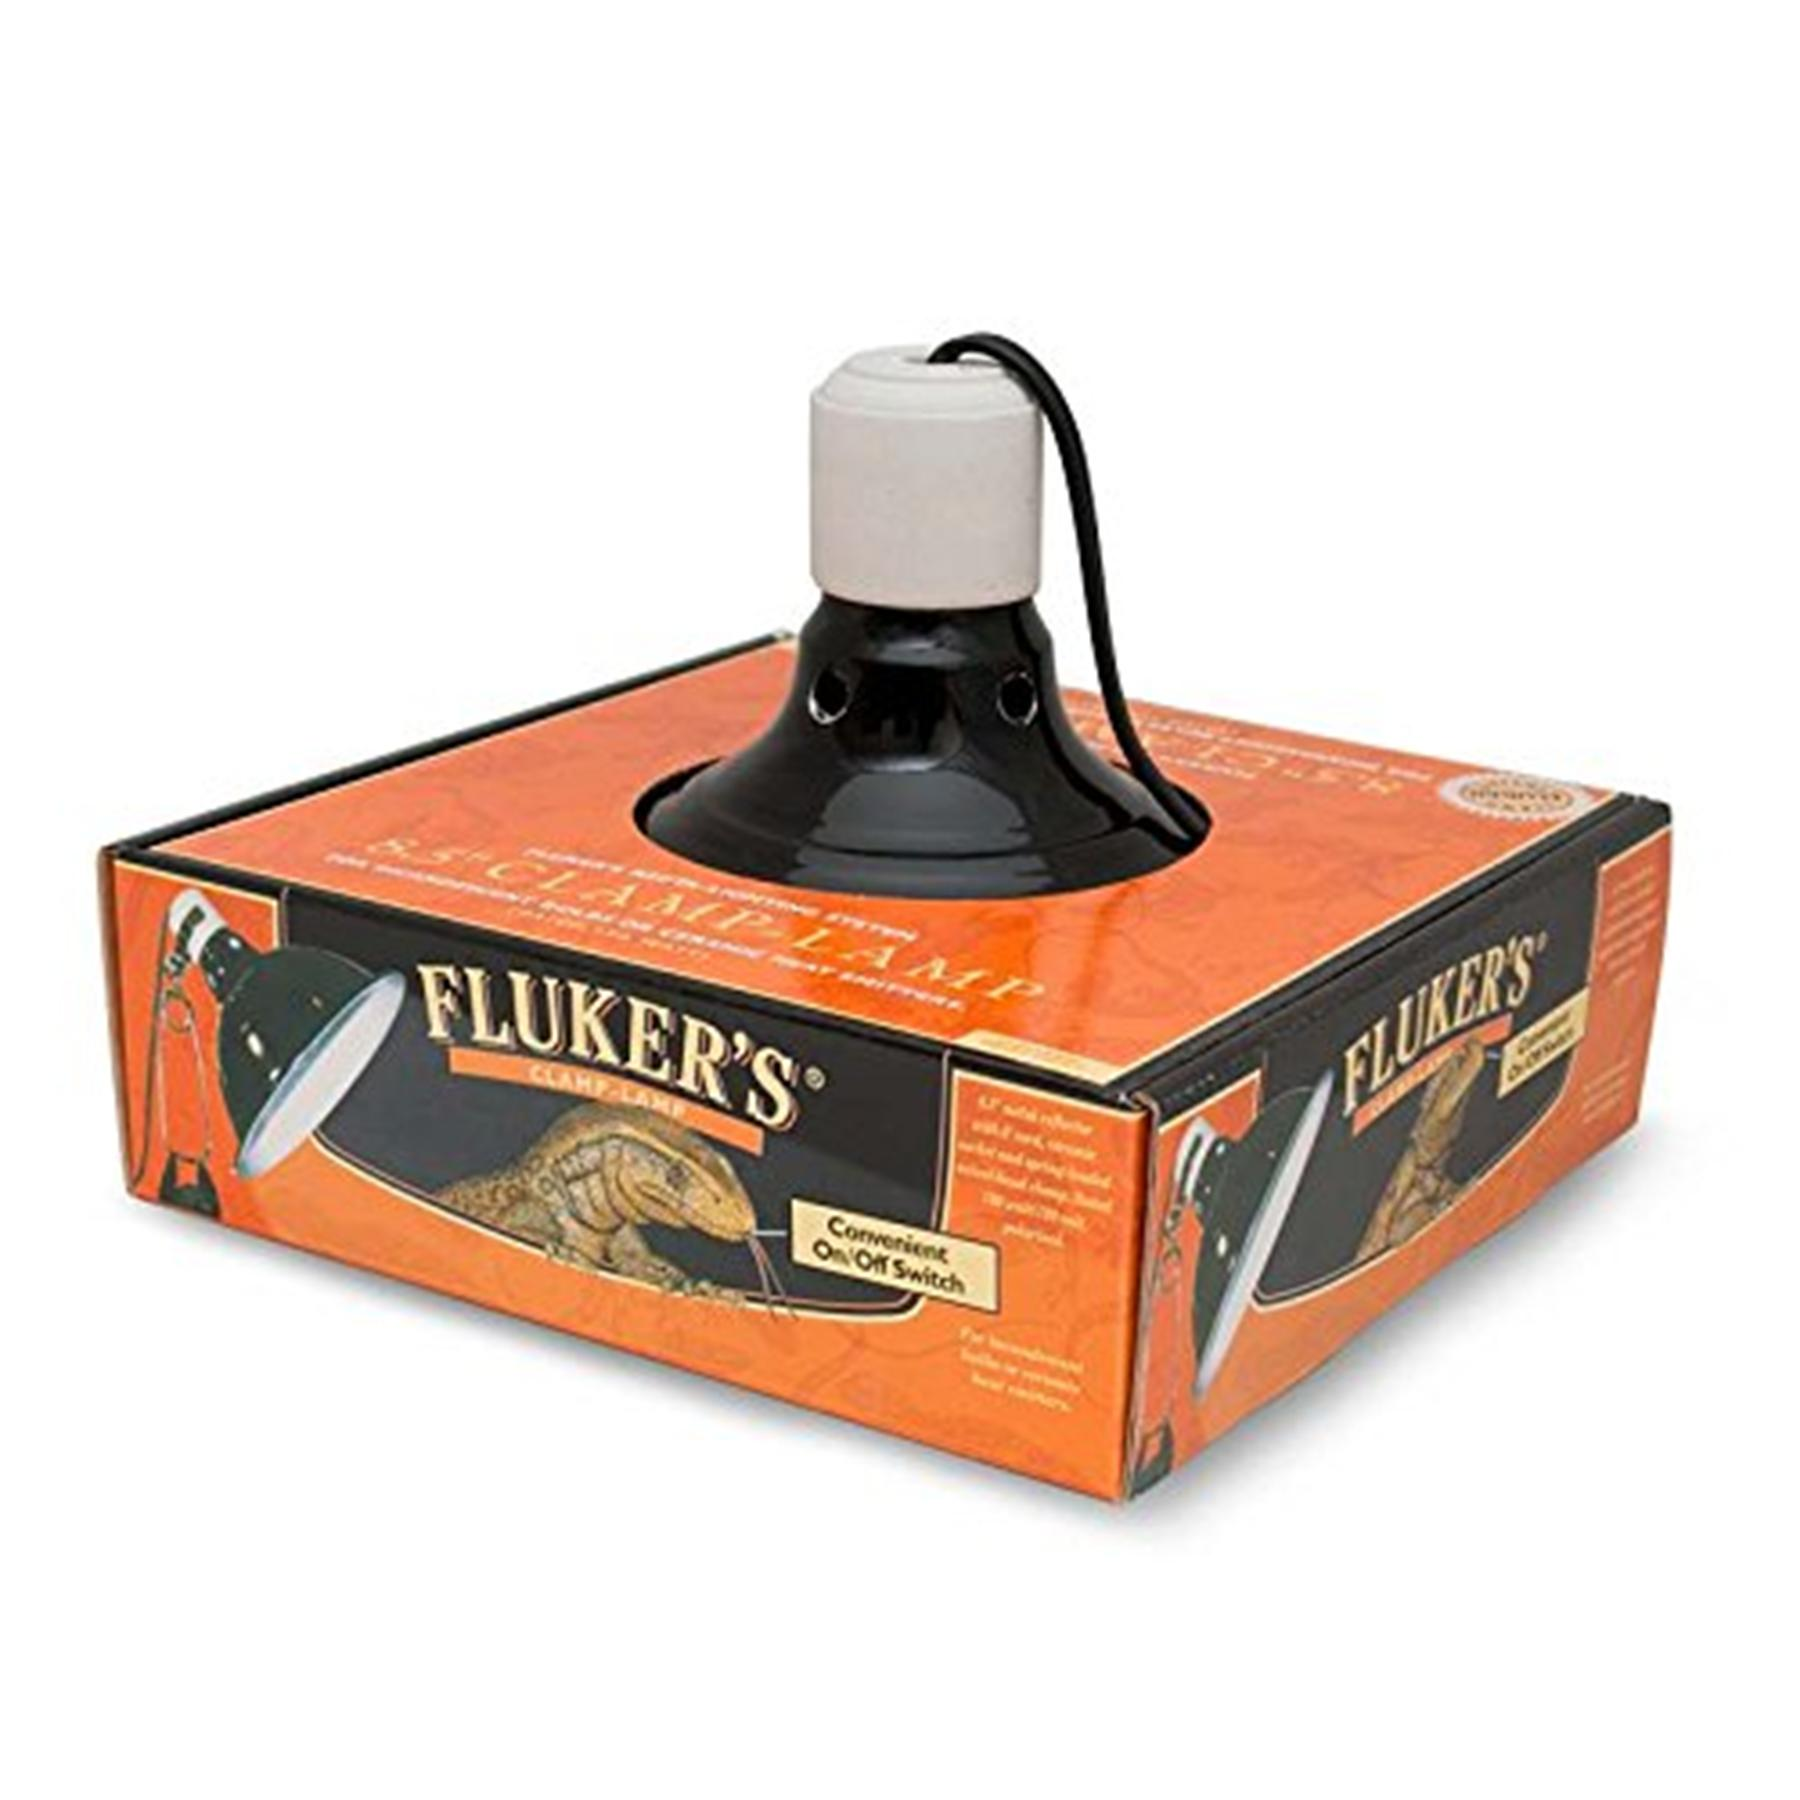 Fluker's Clamp Lamp - Click to view on Amazon